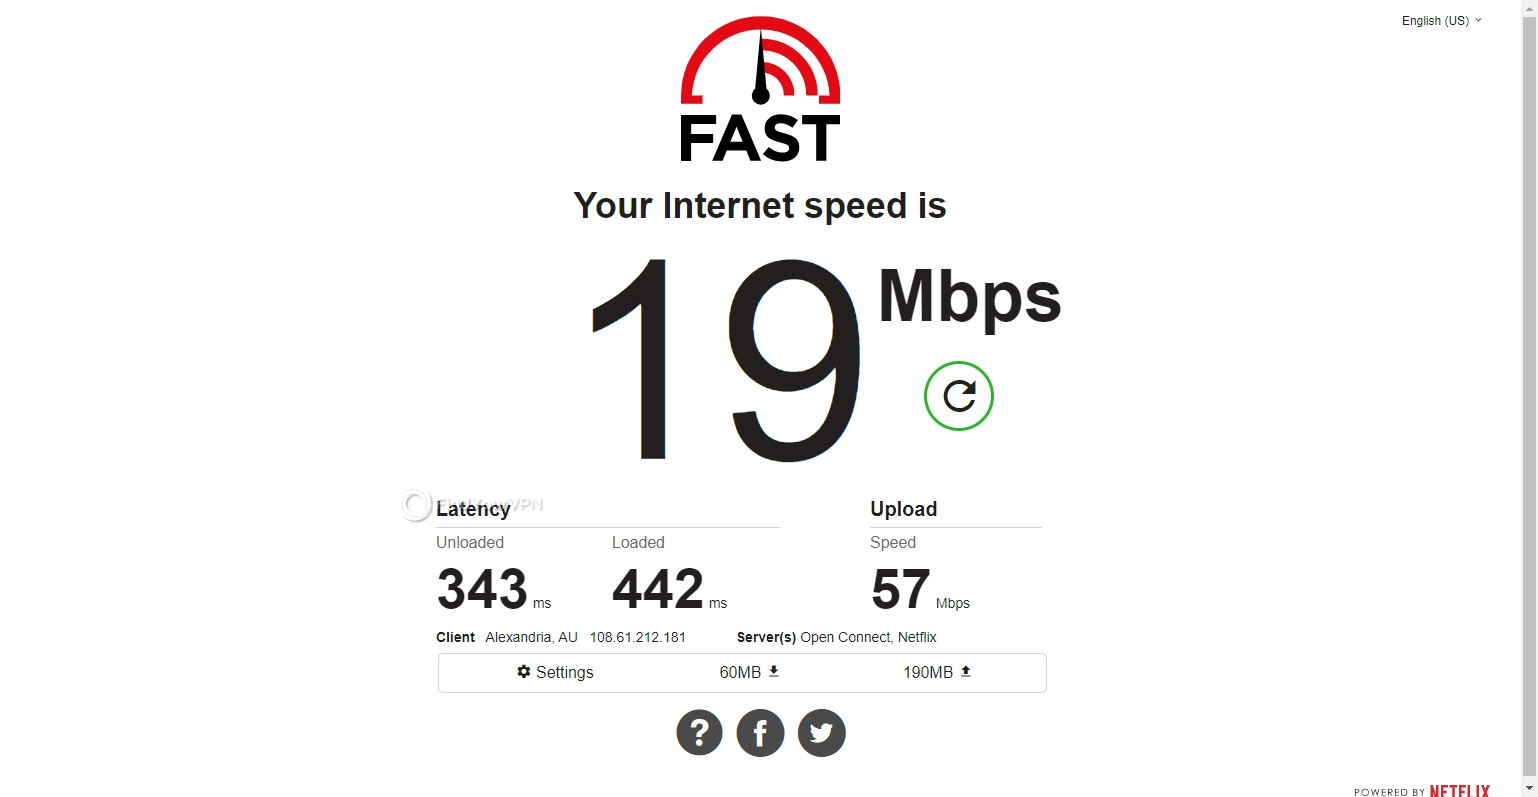 The Australia speed results for SaferVPN